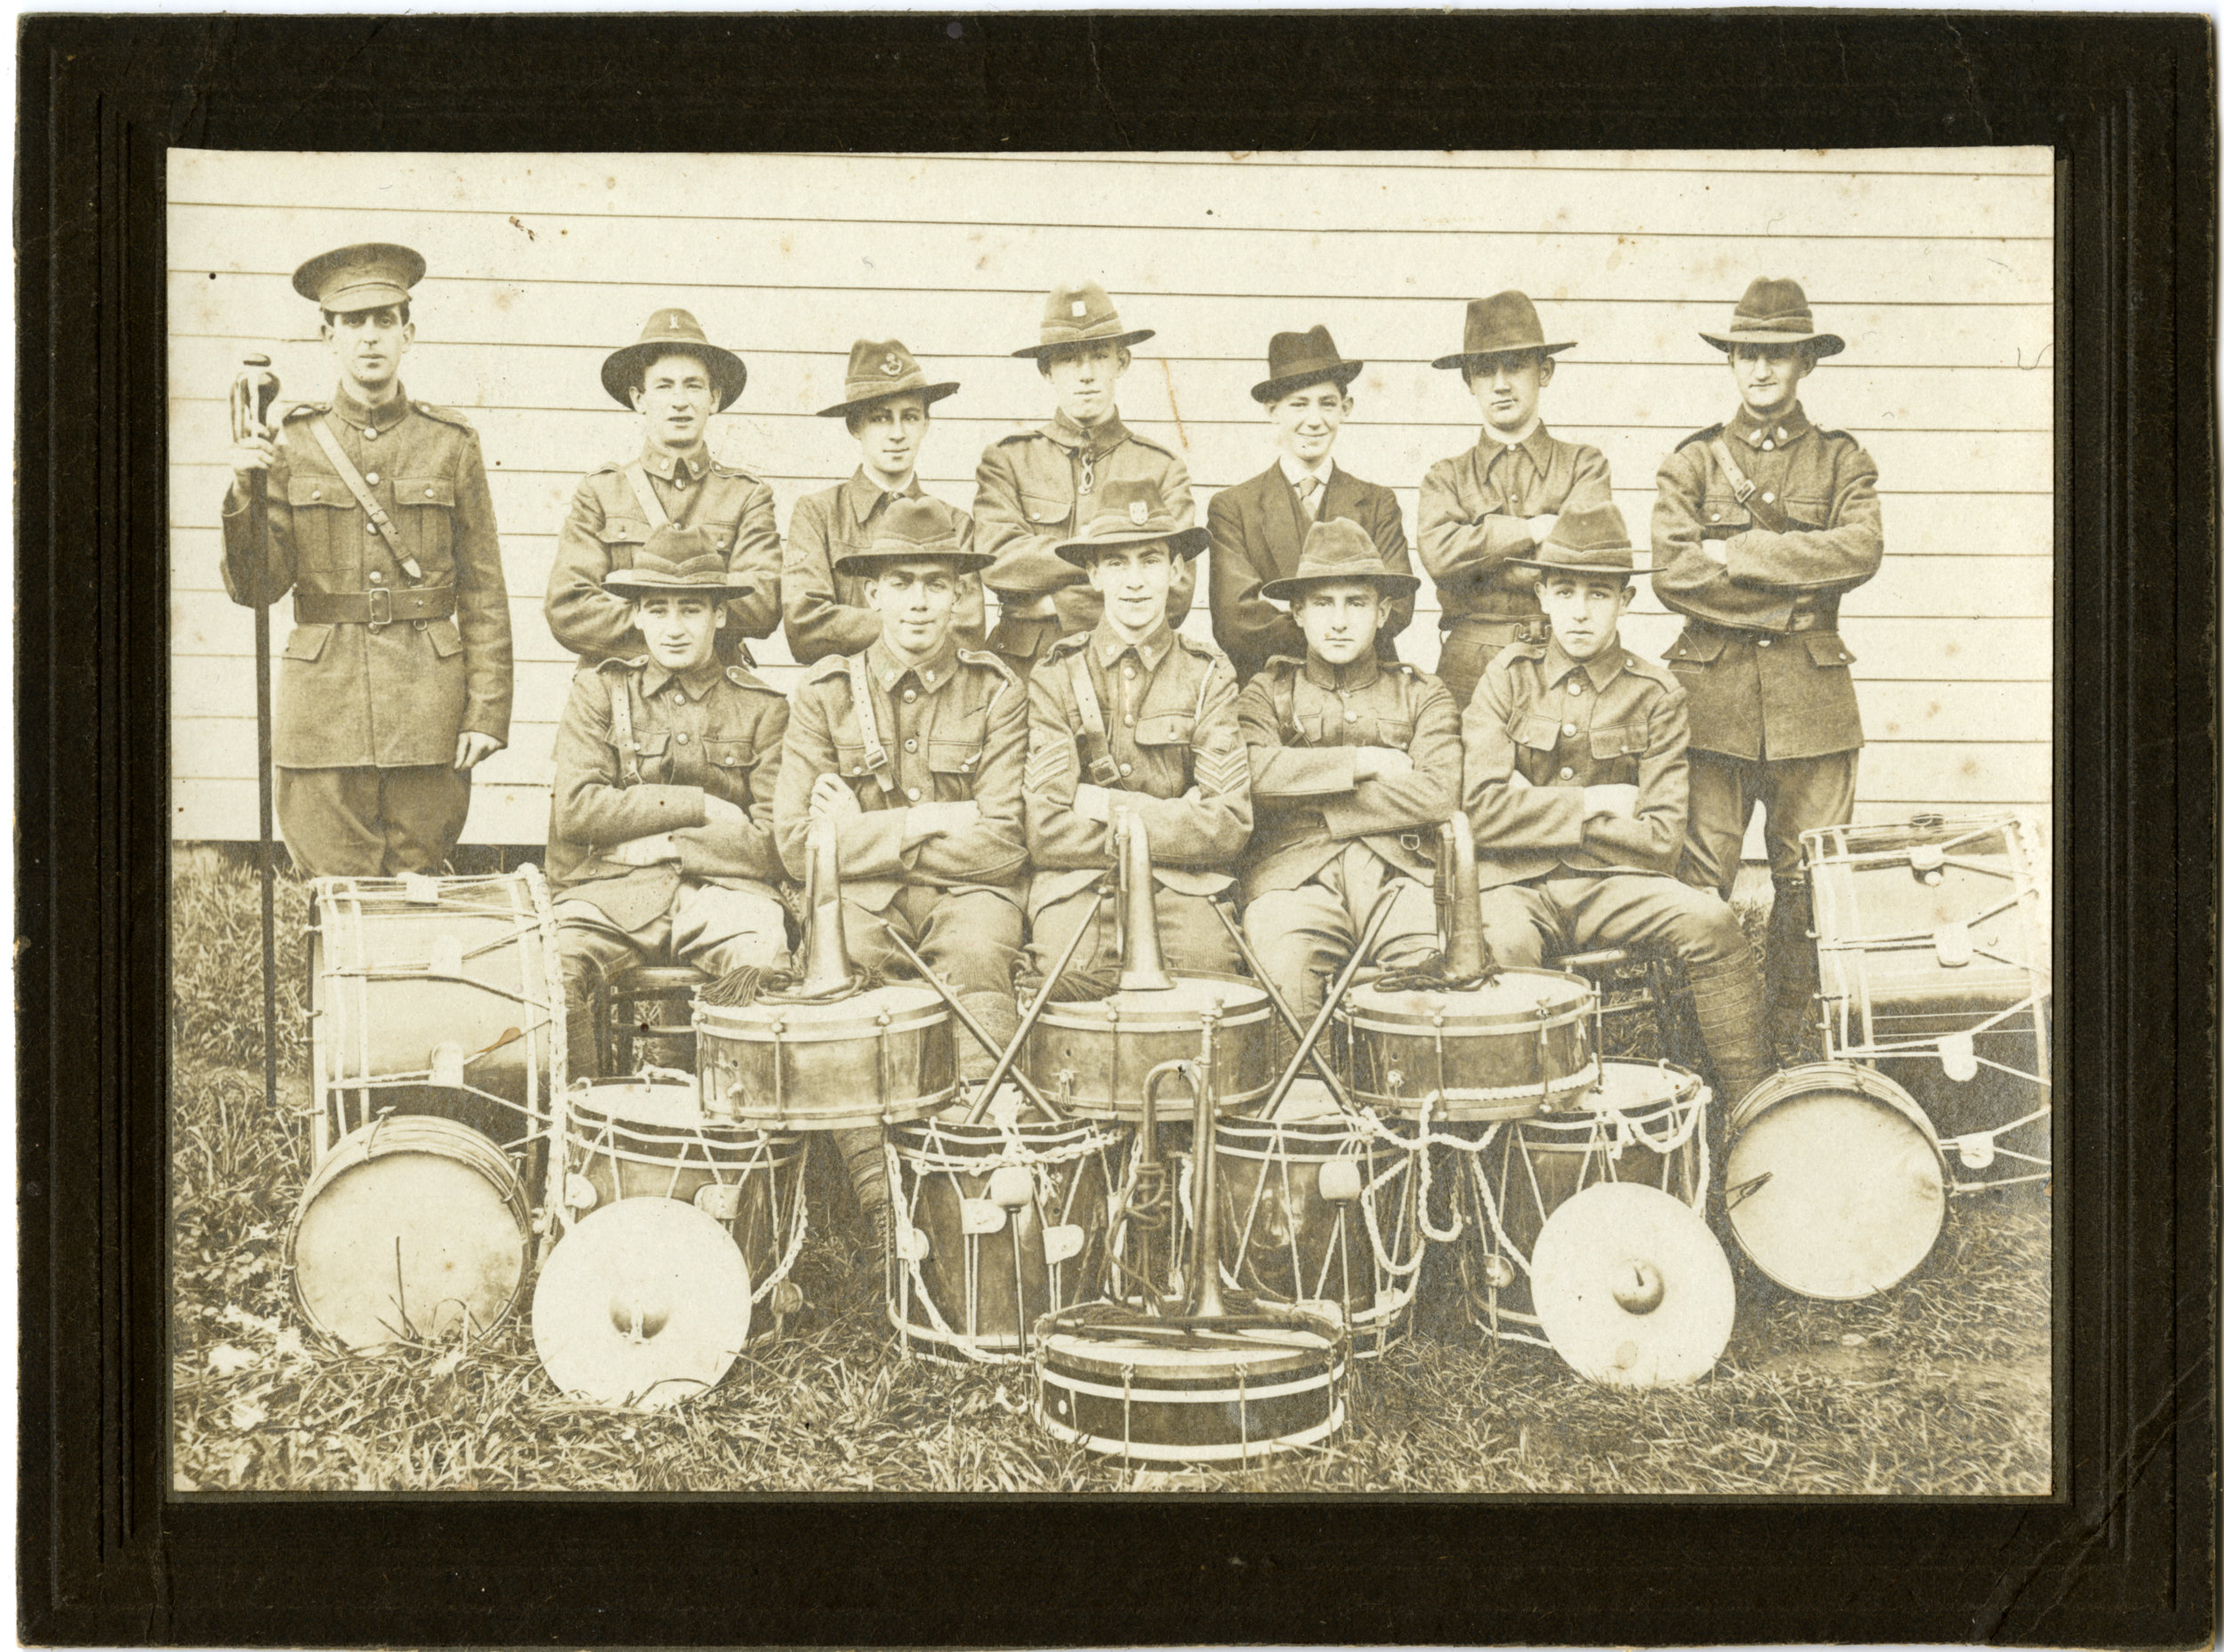 Unidentified military band. Norman is second on left back row, next to man with marching stick.